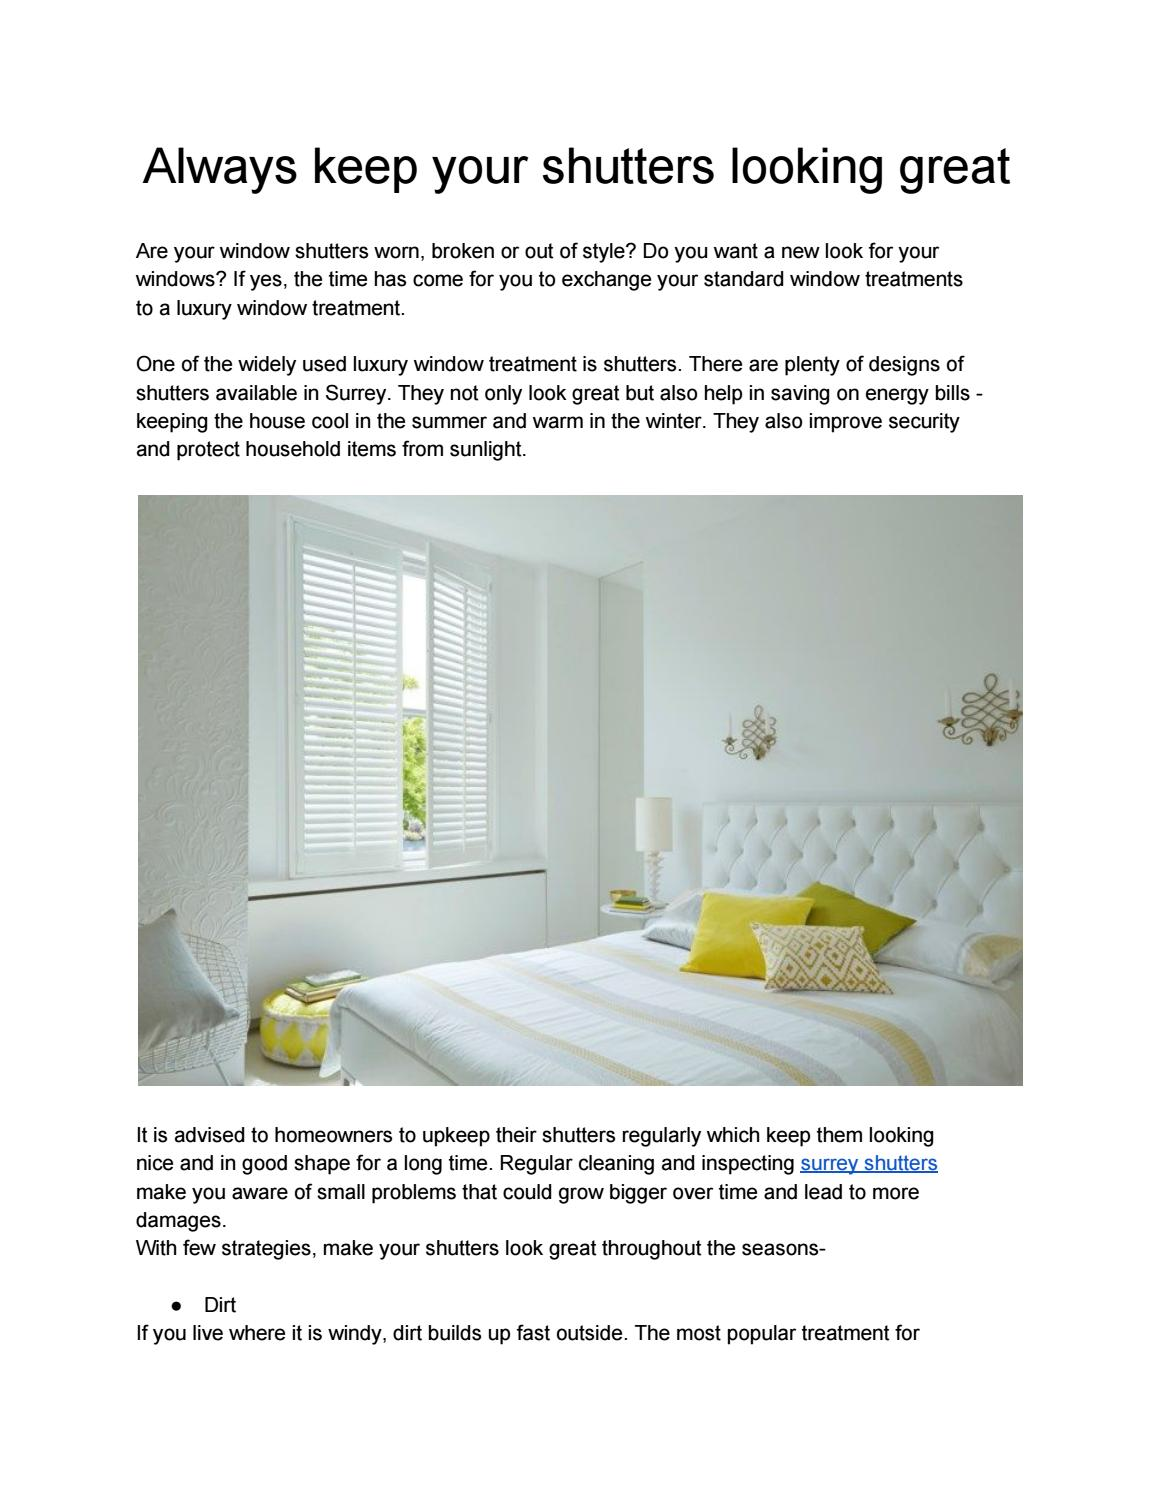 Always Keep Your Shutters Looking Great By Stablesamy26 Issuu